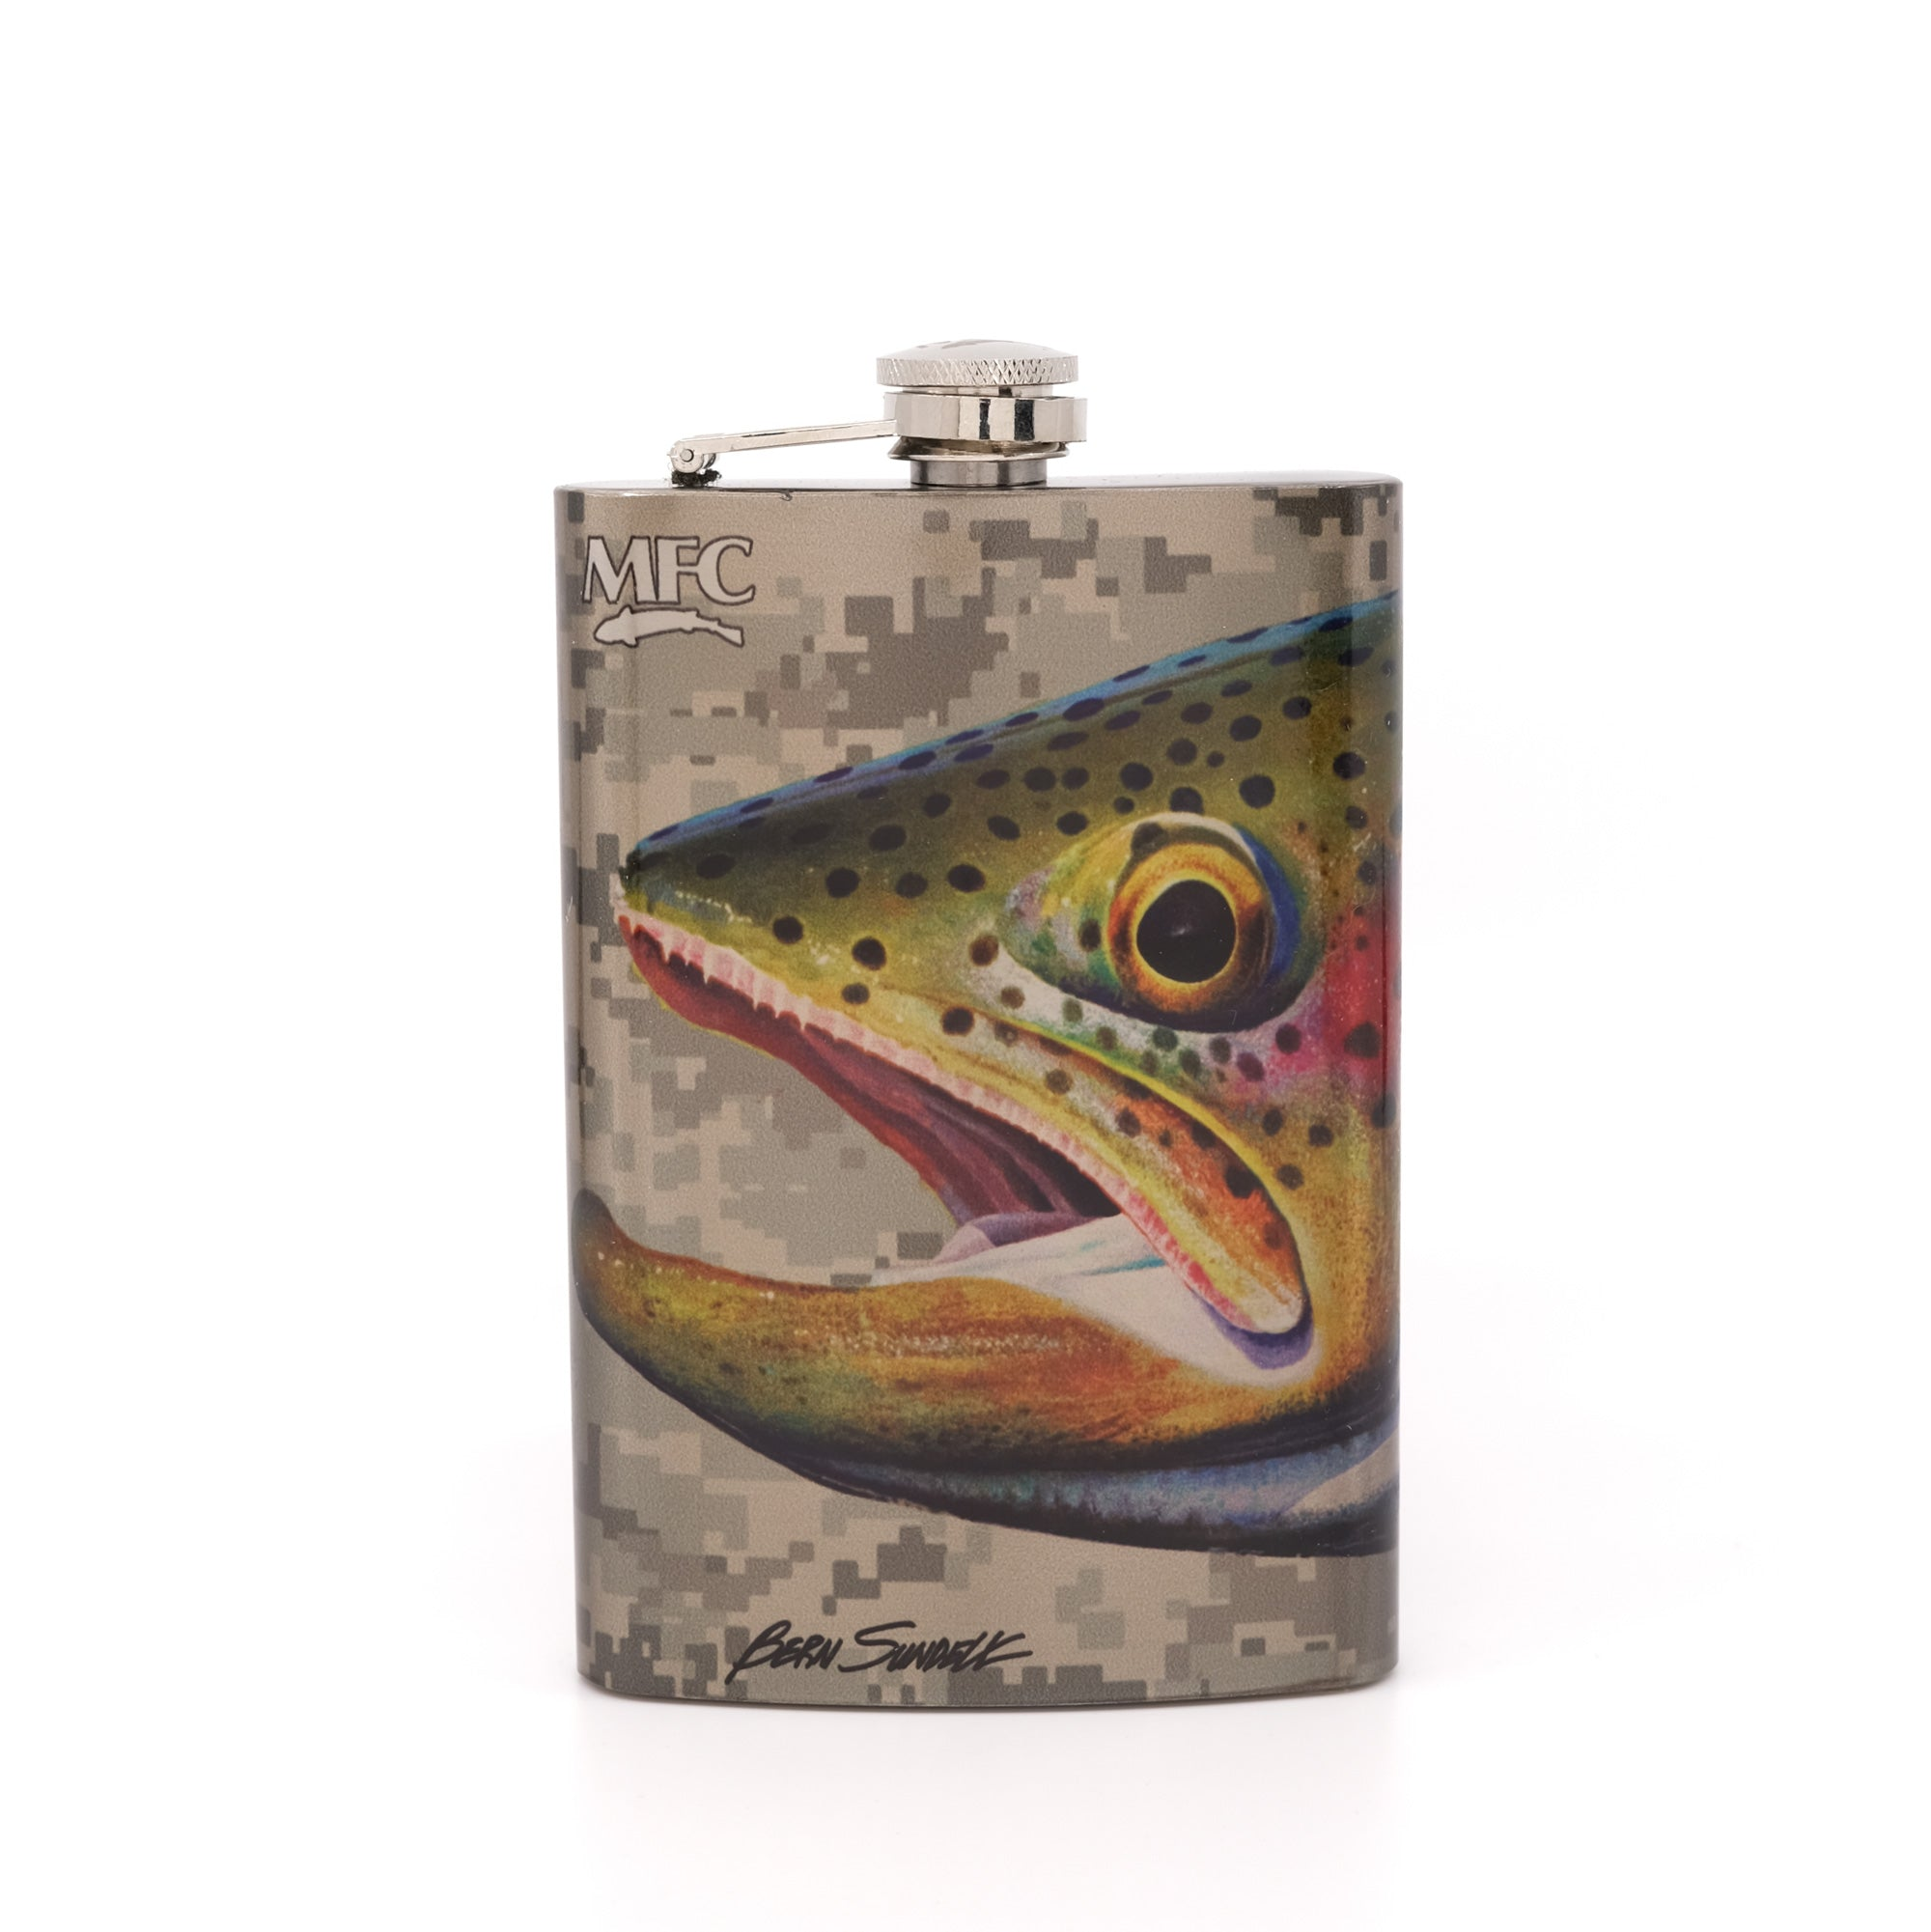 MFC Hip Flask - Sundell's Starlight Rainbow Camo